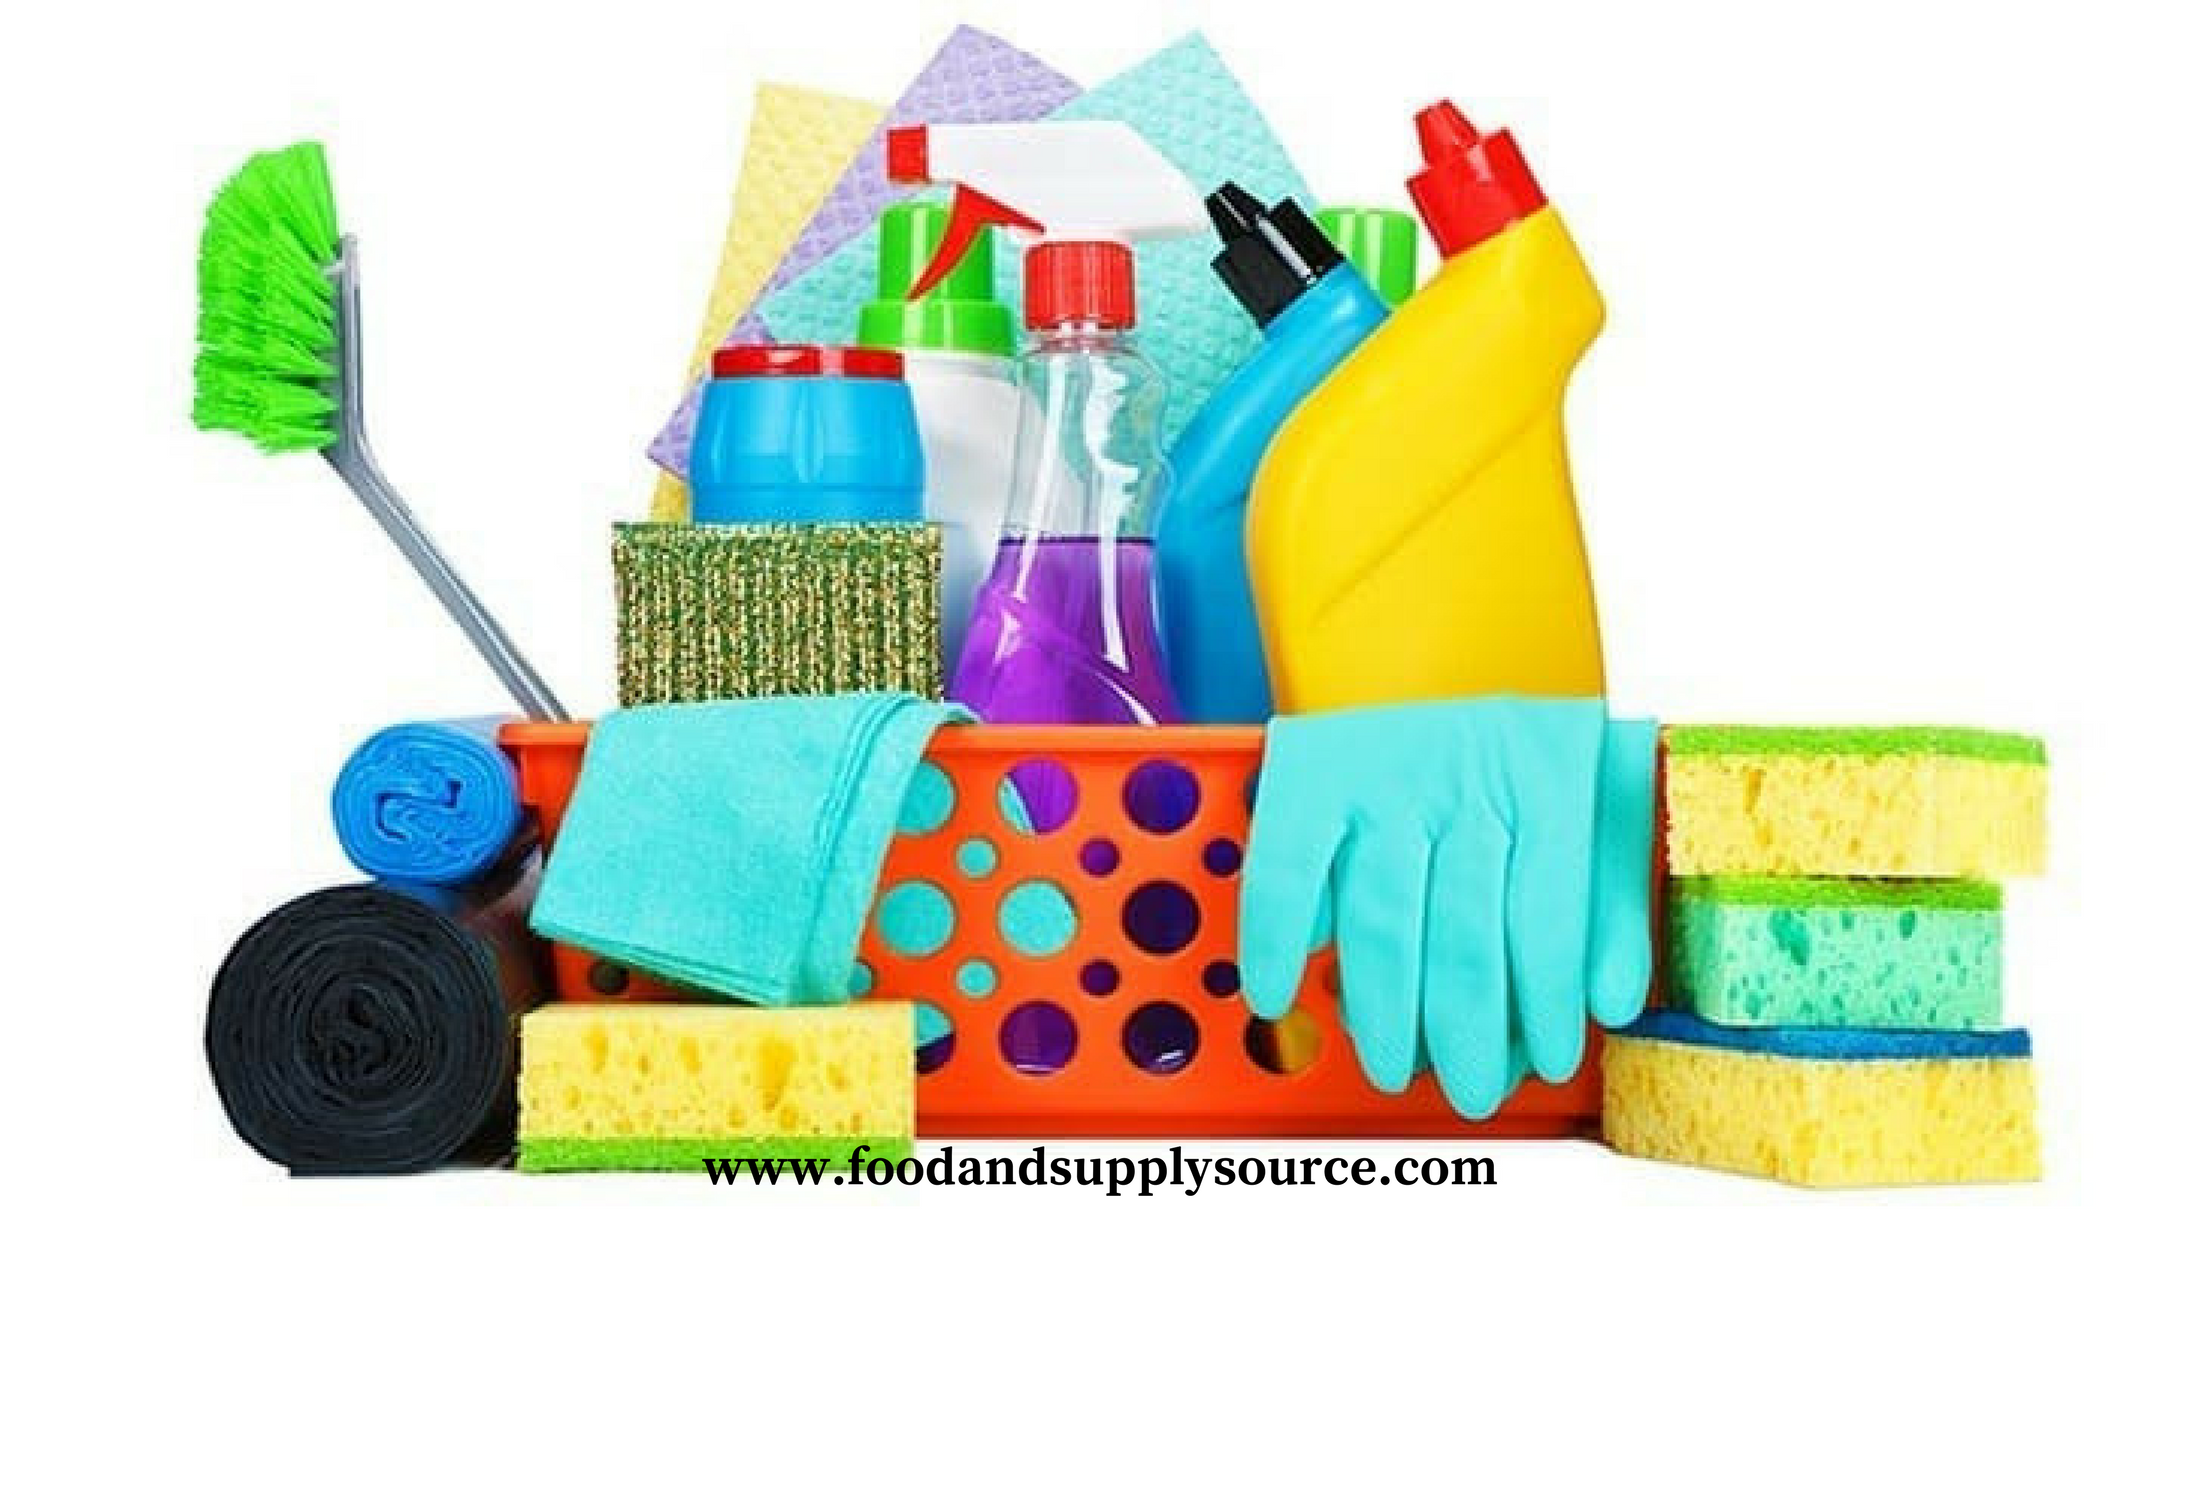 Whole Cleaning Supplies Ways To Lower Costs For Head Start